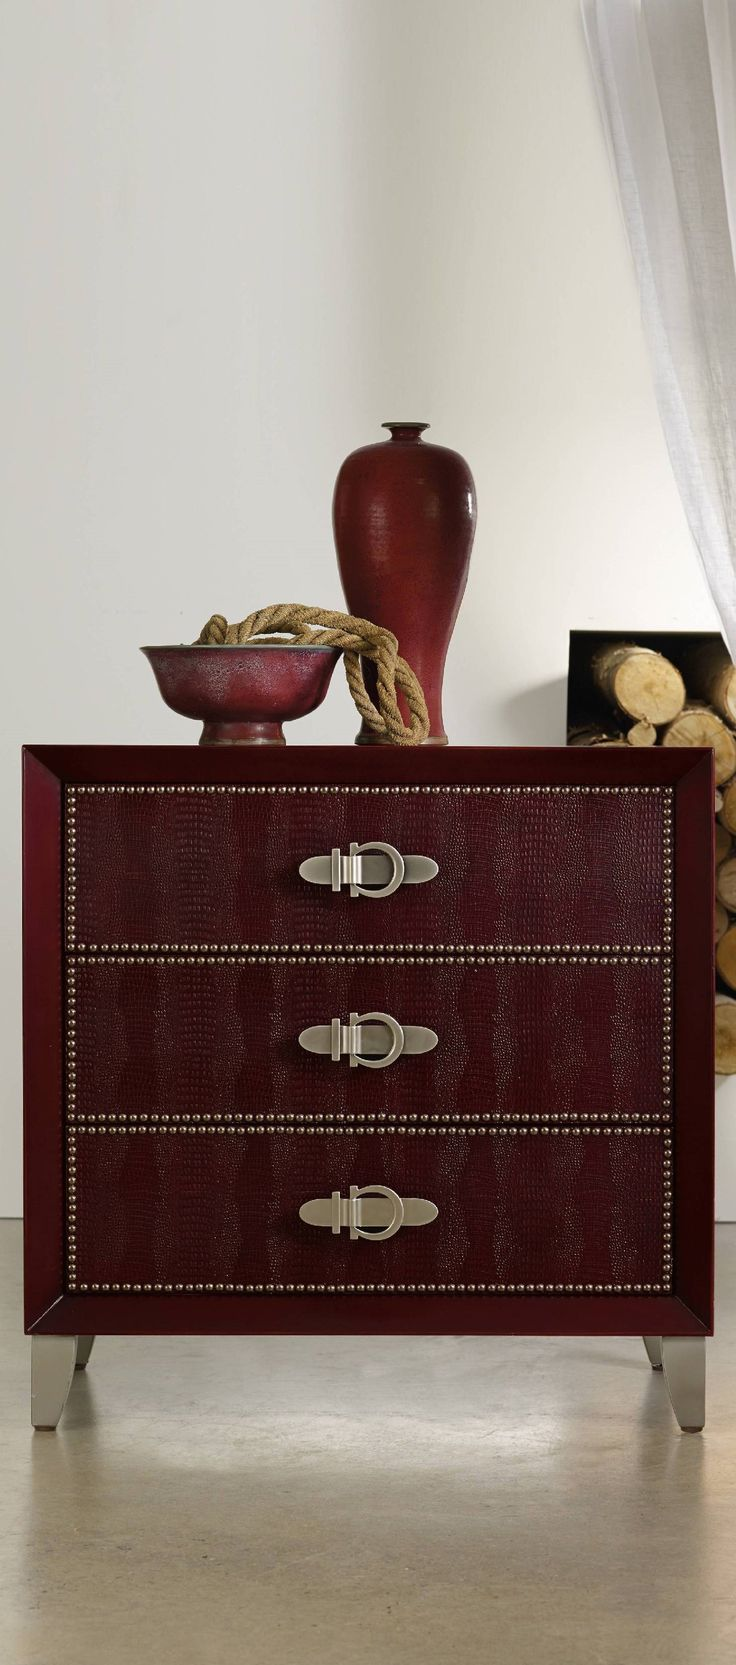 Shaker style bedroom furniture - Find This Pin And More On My Home Style Eclectic Elegance